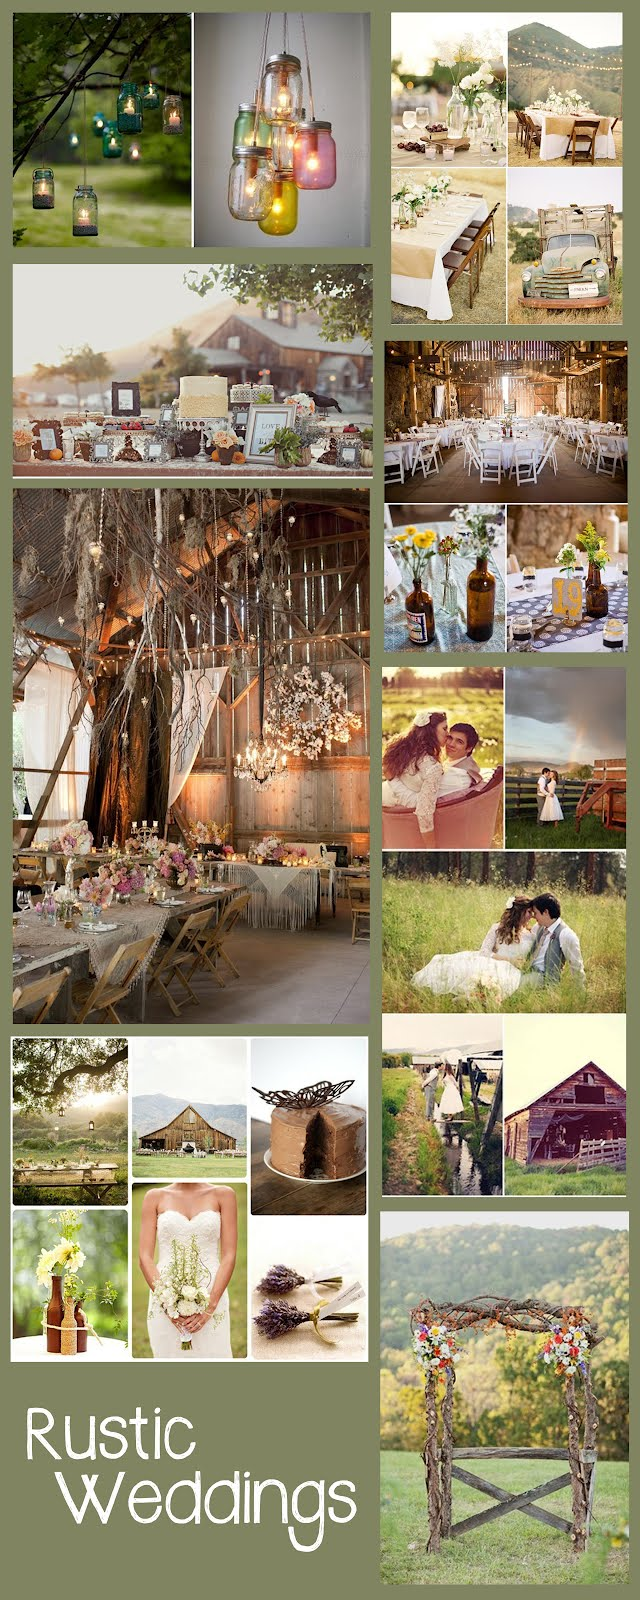 Rustic Barn Weddings  - Rustic Bwedding